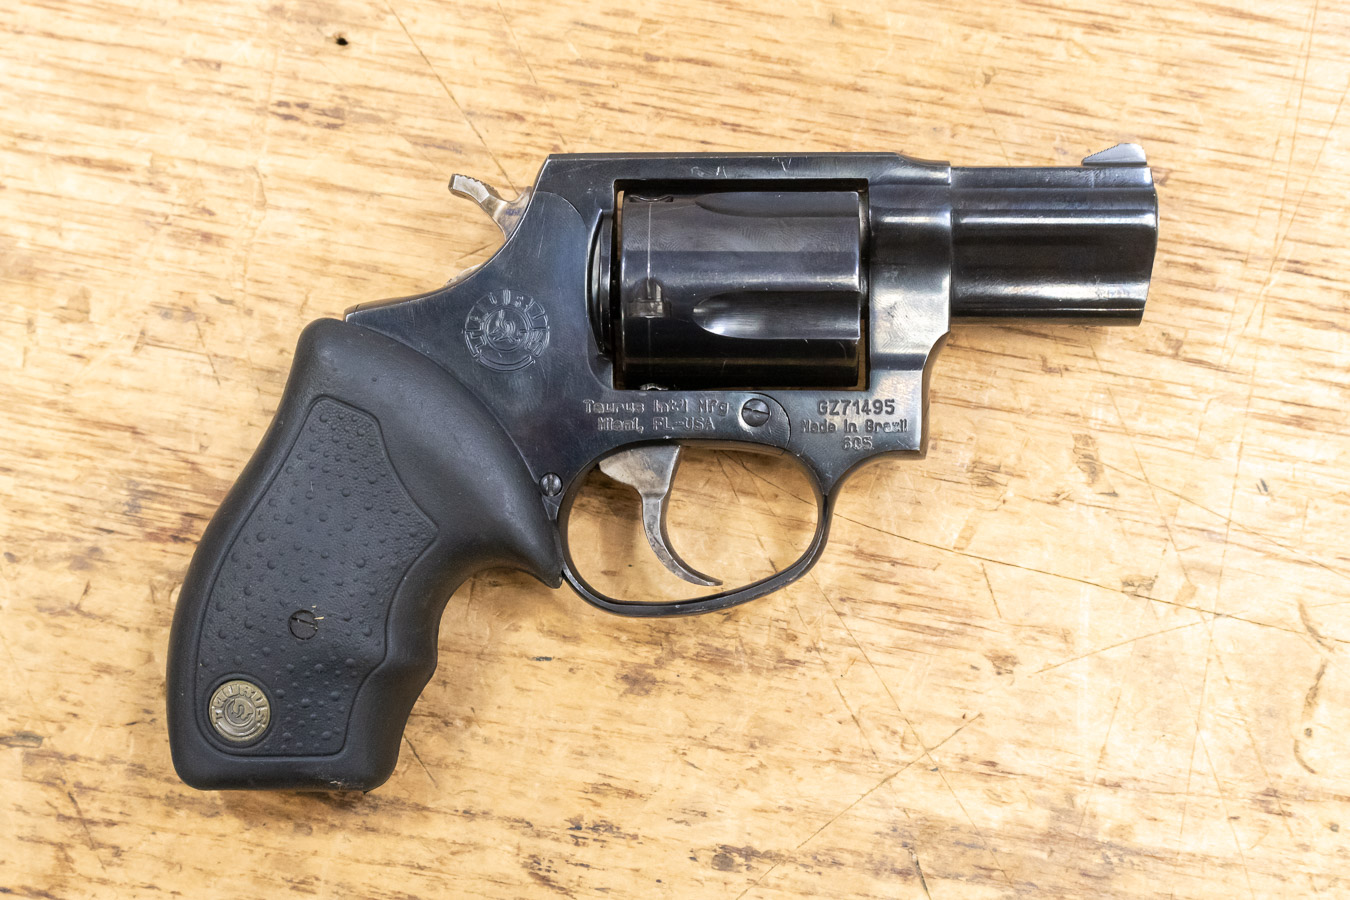 605 USED .357MAG REVOLVER USED